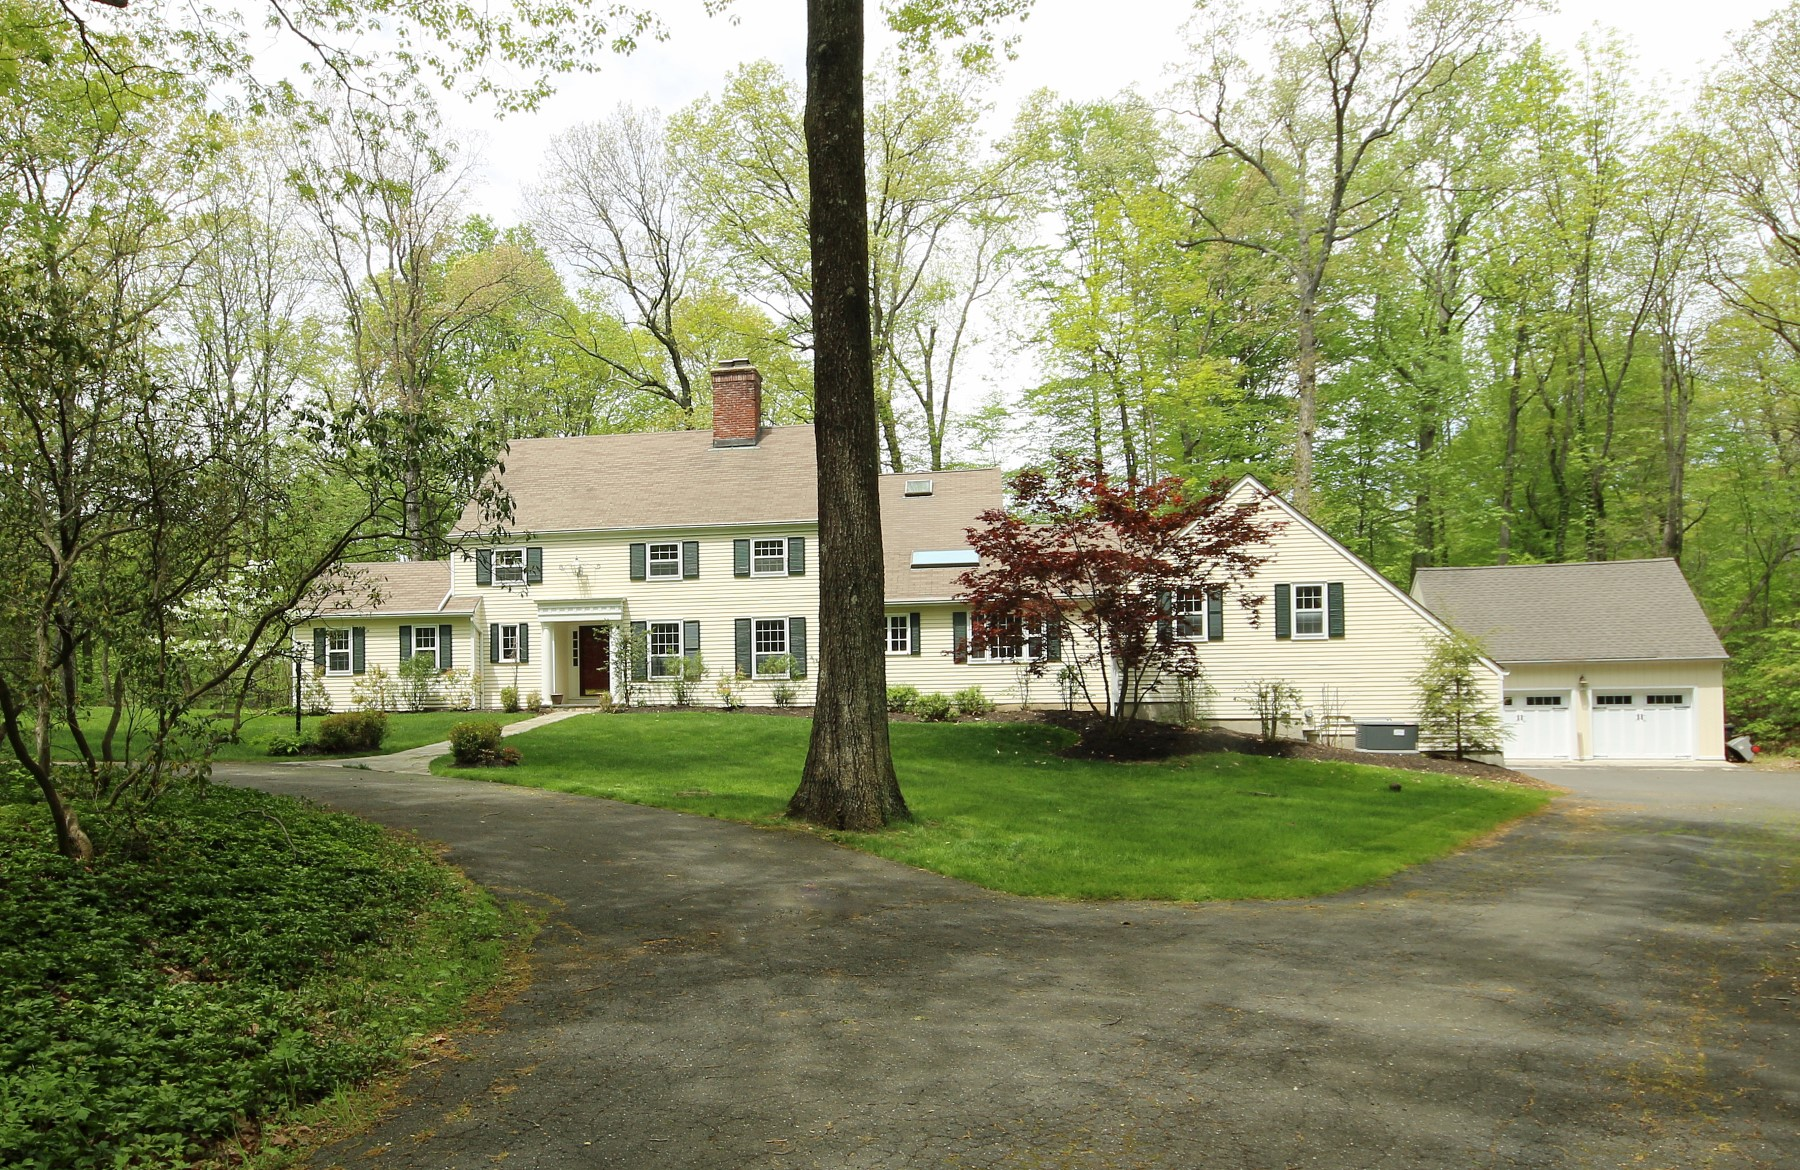 Casa Unifamiliar por un Venta en Sprawling Home on 2 Level Acres 14 Pelham Lane Ridgefield, Connecticut, 06877 Estados Unidos